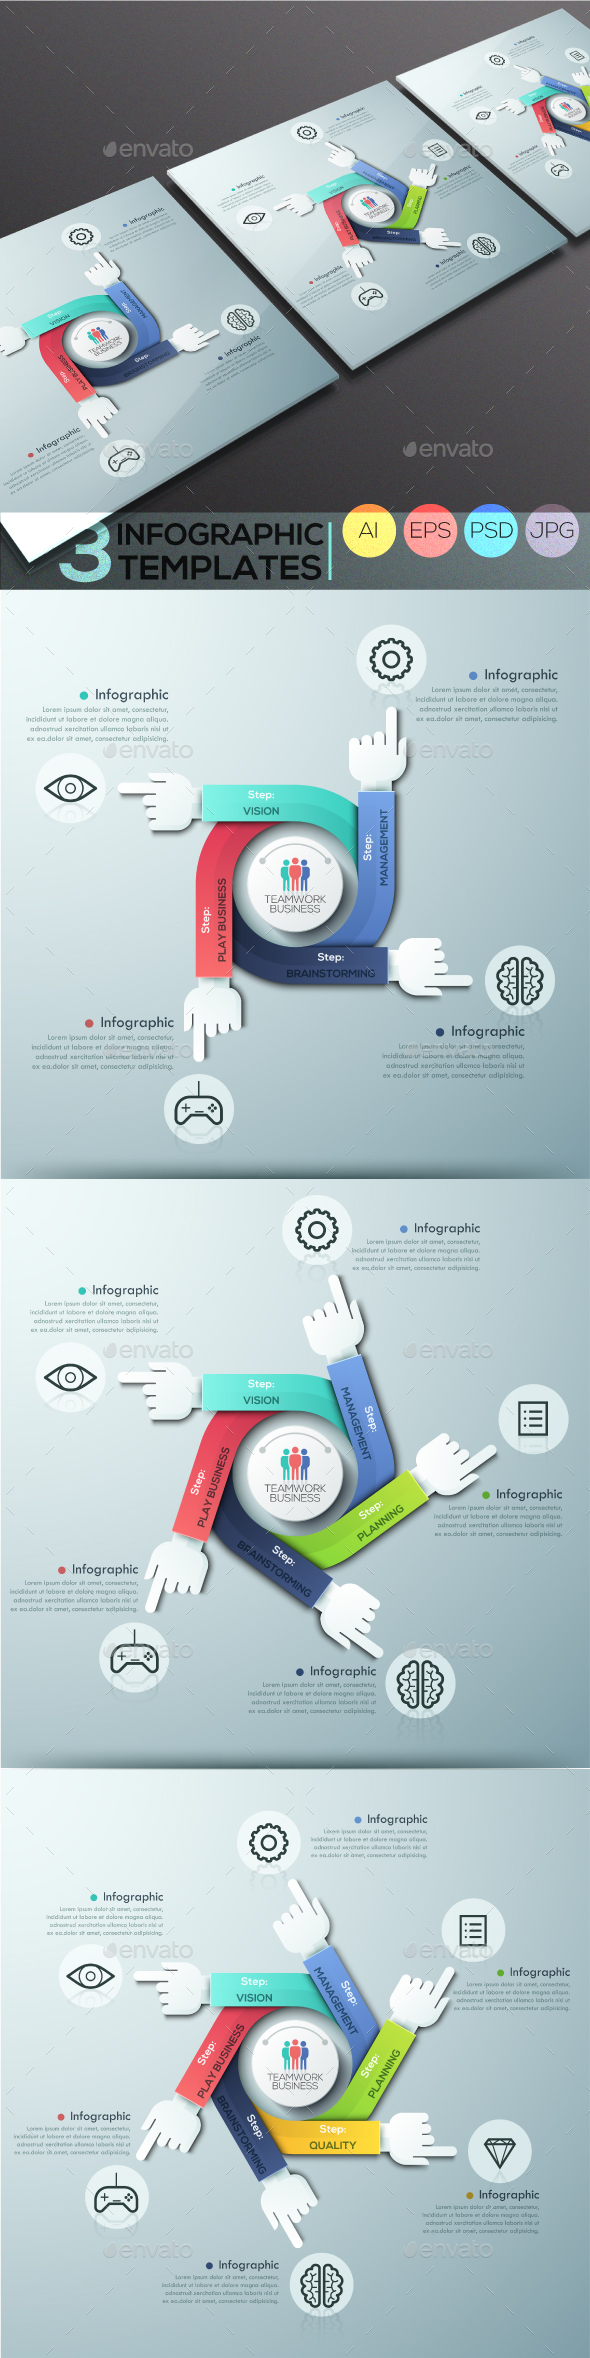 Modern Infographic Teamwork Templates (3 Items) - Infographics